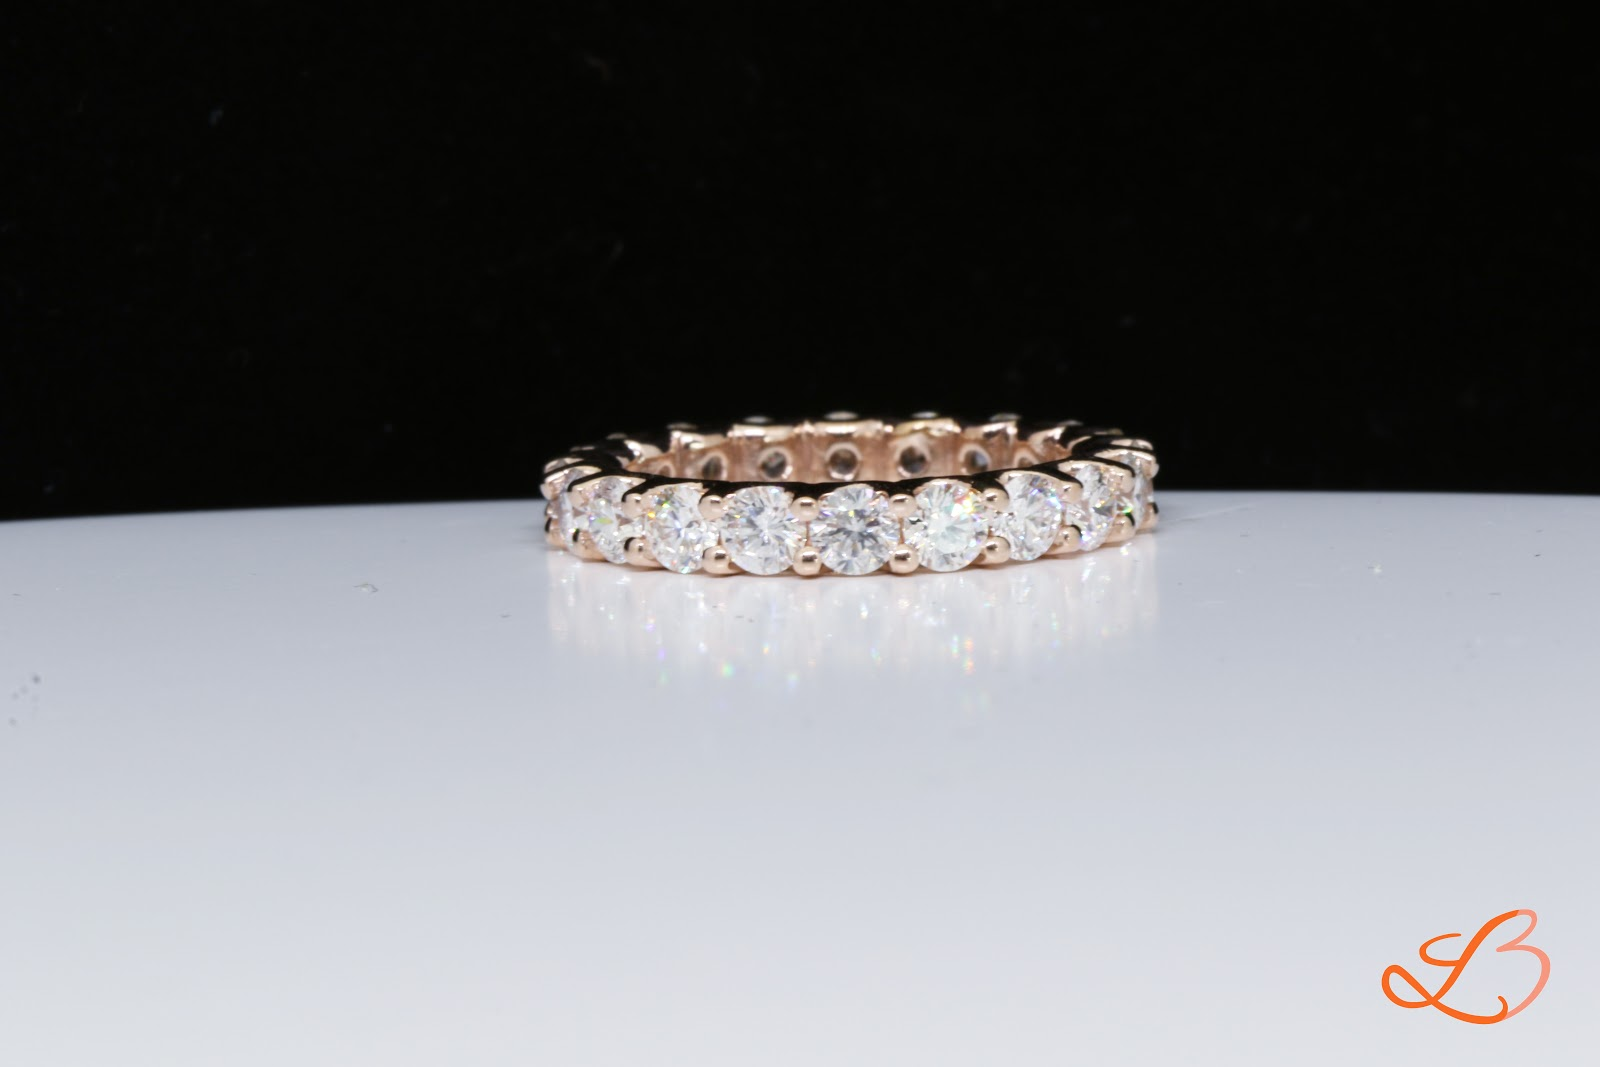 LB-Engagement-Eternity-Bands.jpg